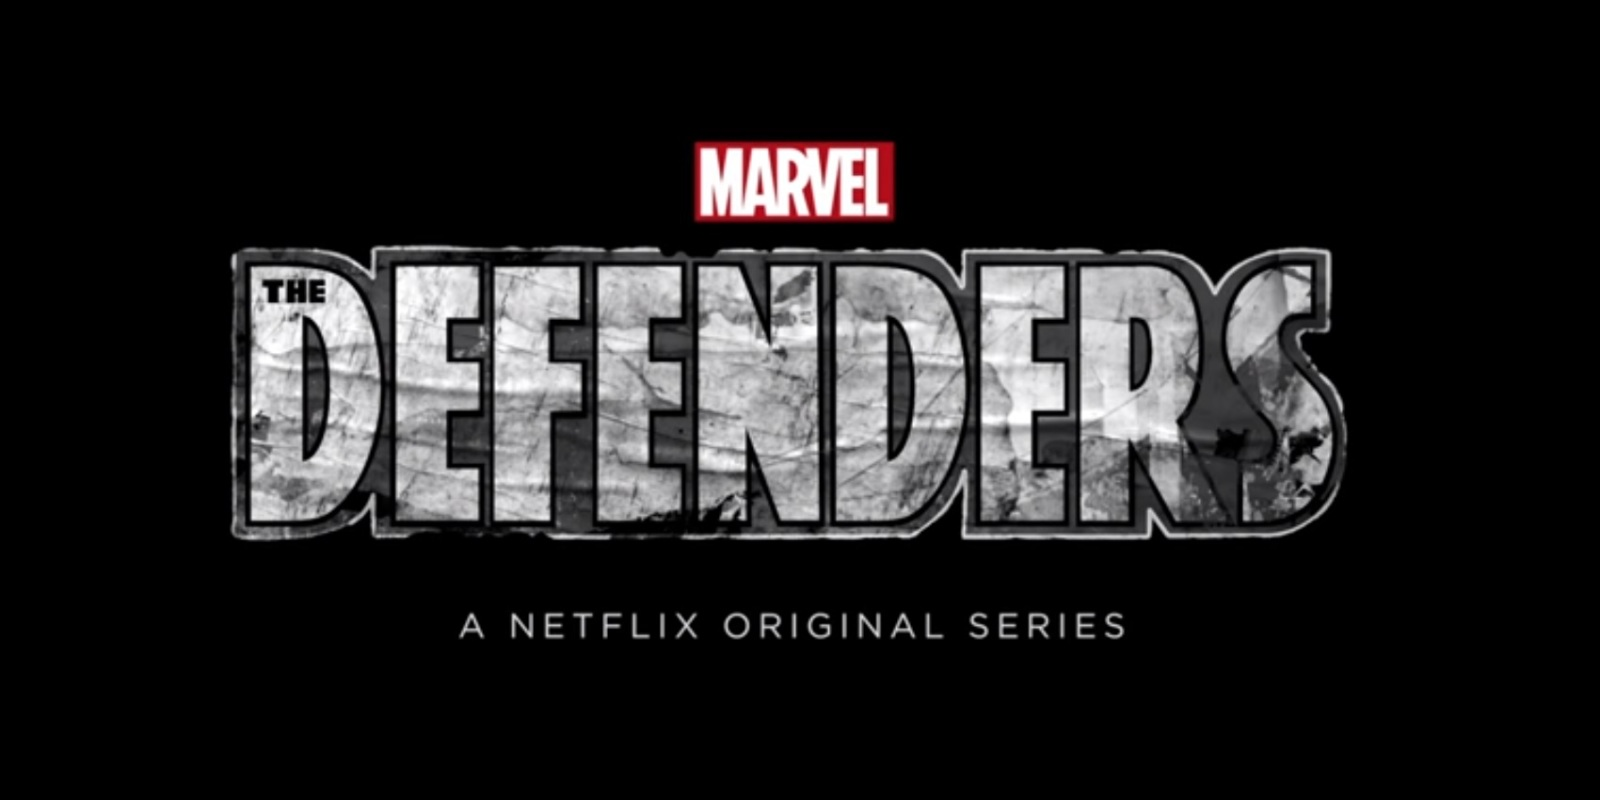 Más nombres regresan en The Defenders